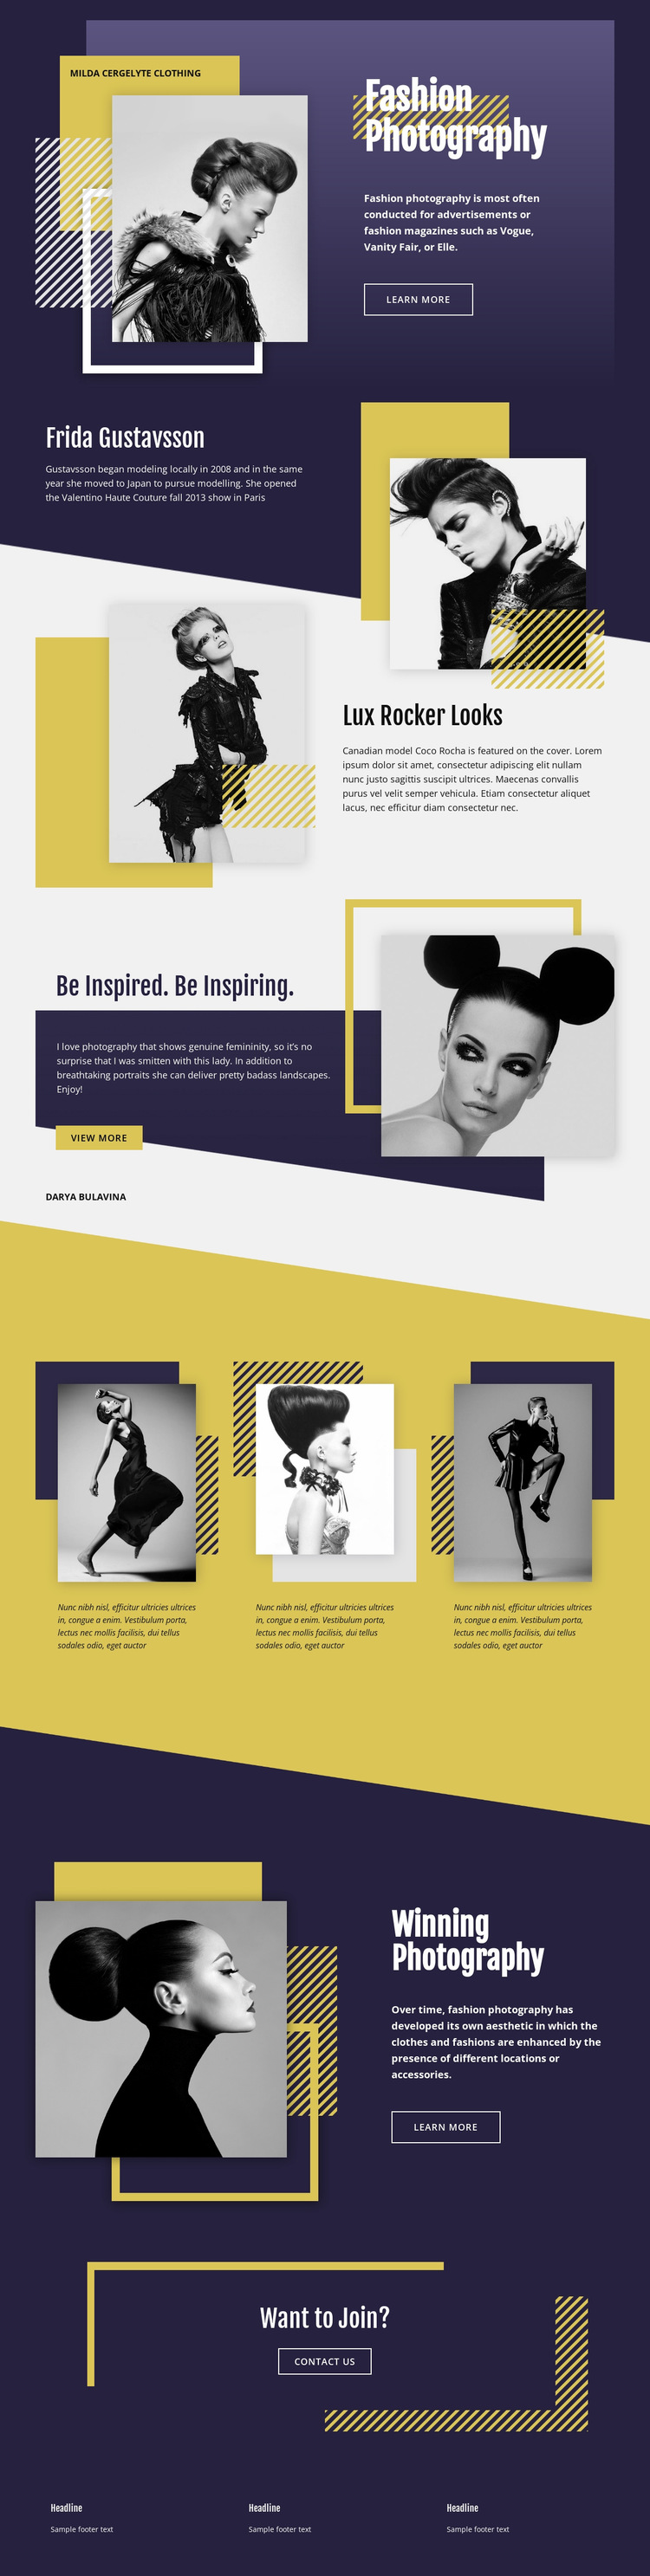 Fashion Photography Overlapping Website Builder